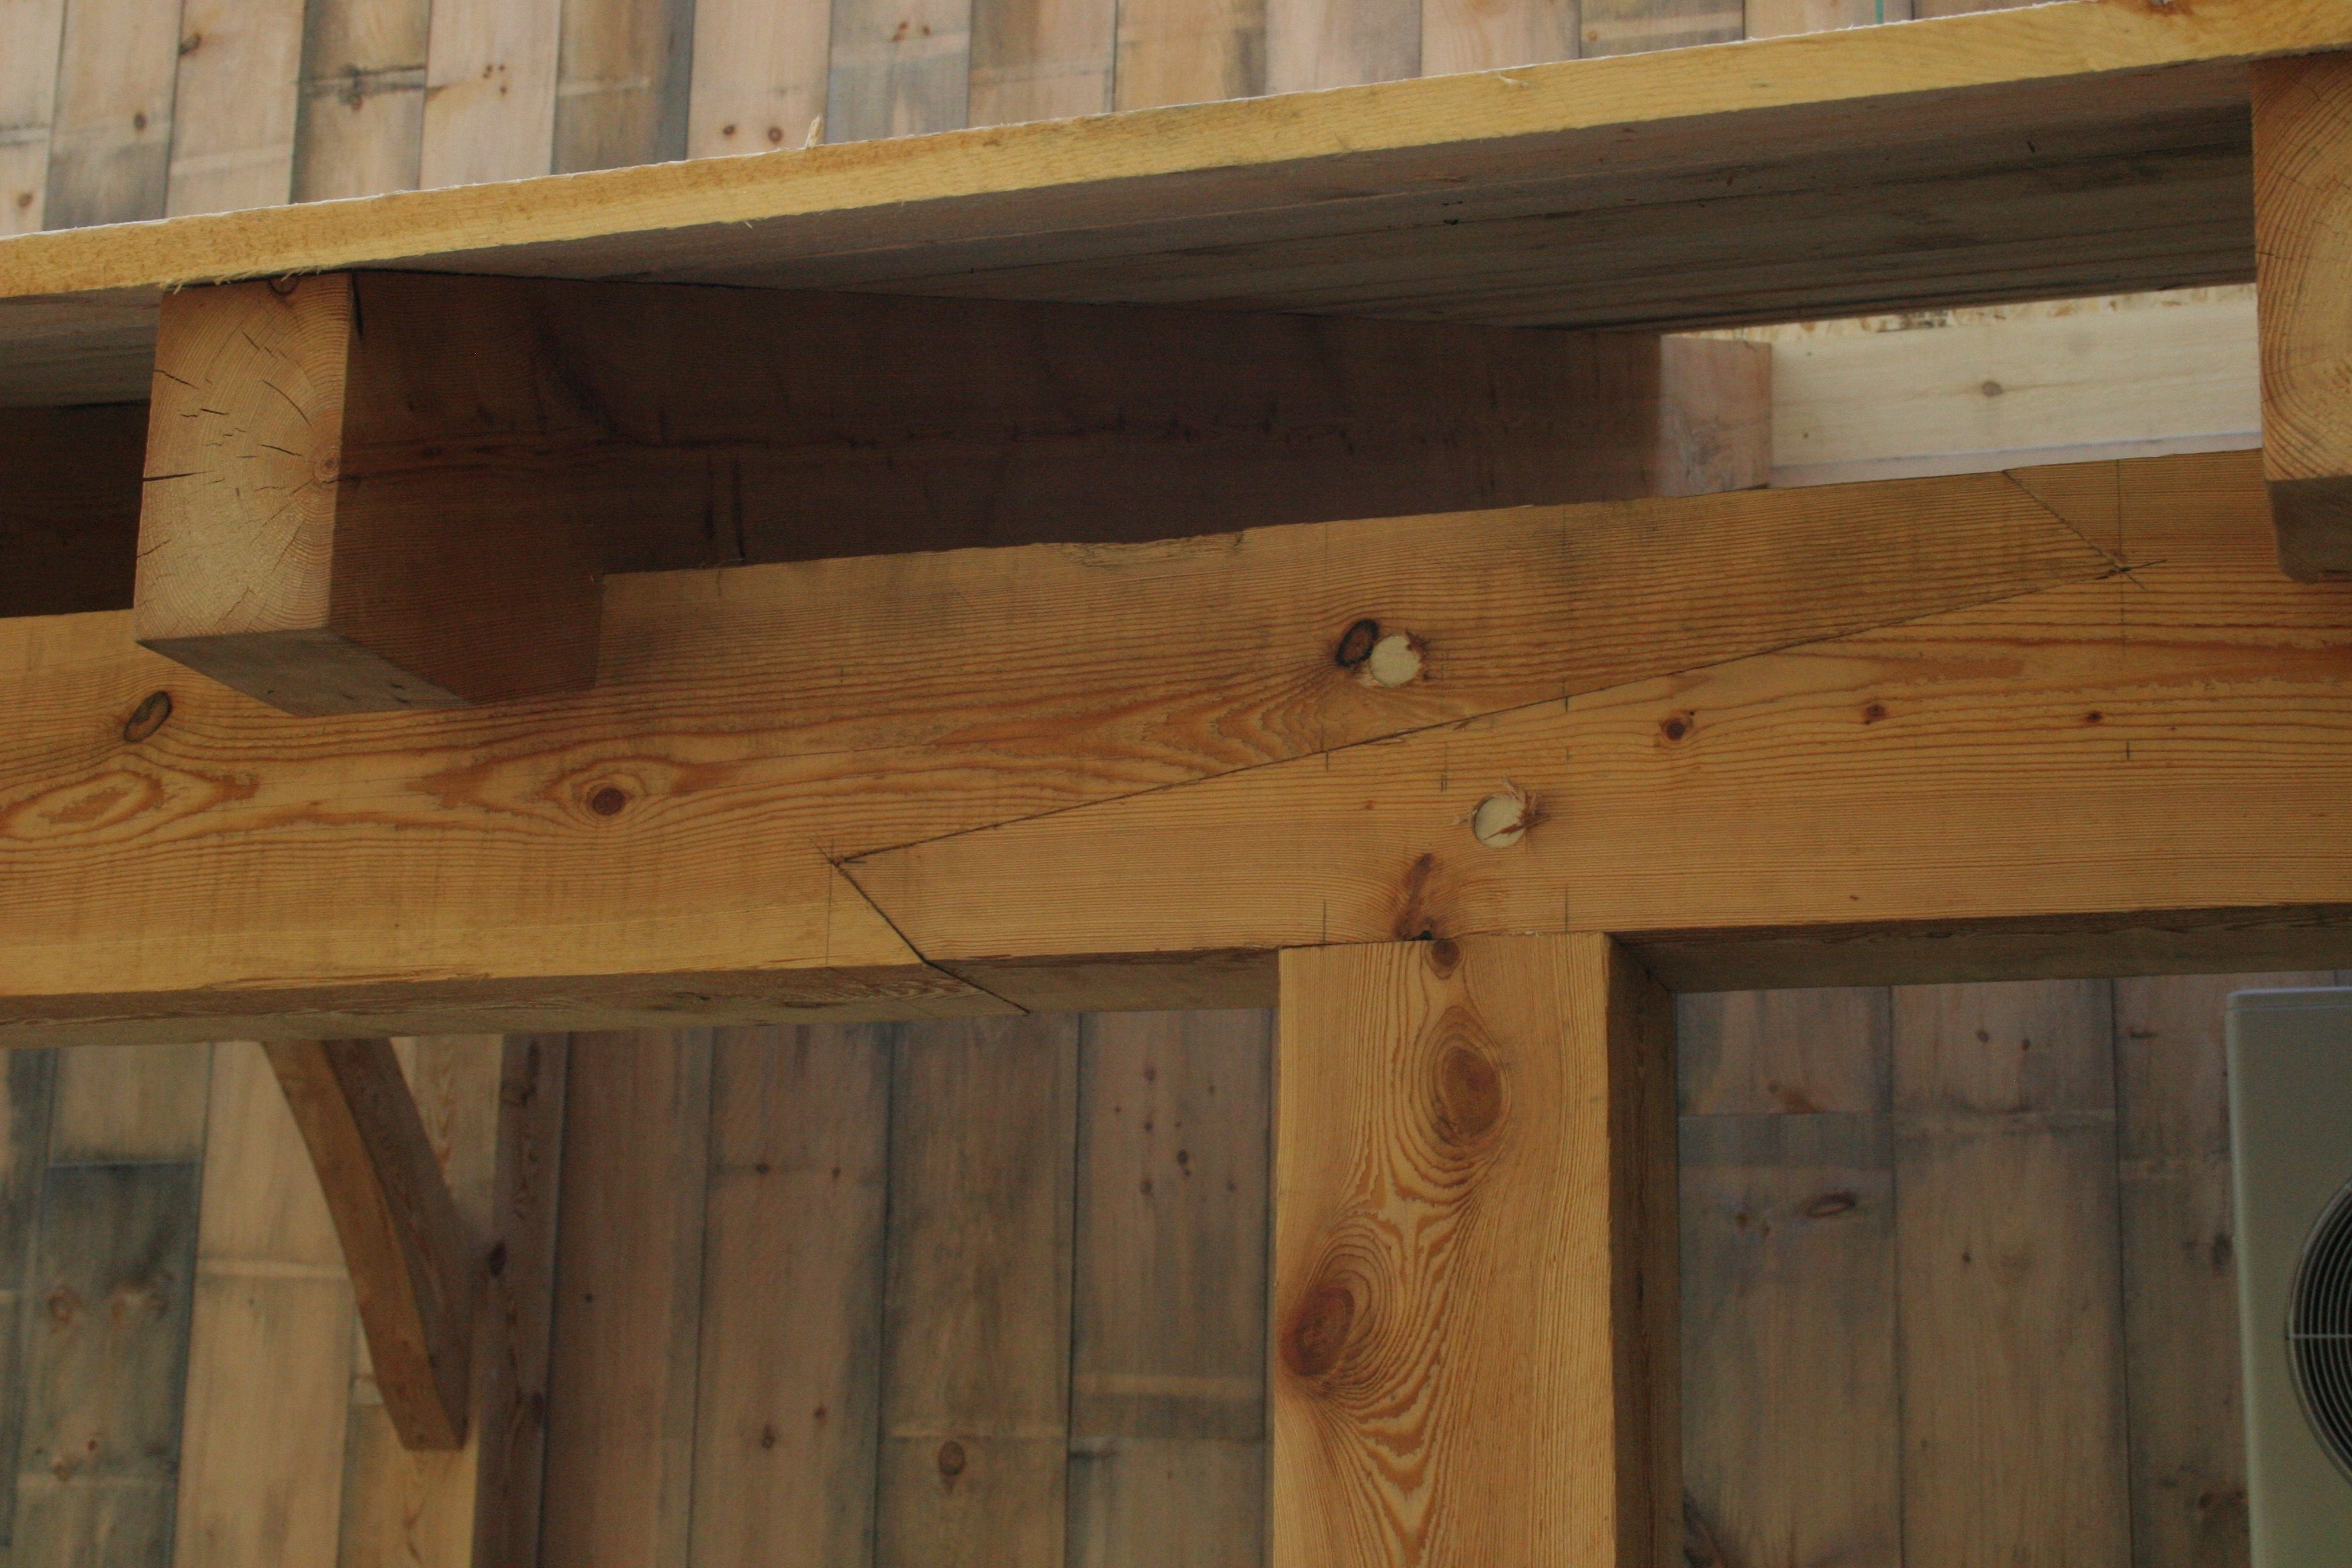 Where can I find information about round timber/beam qualification?